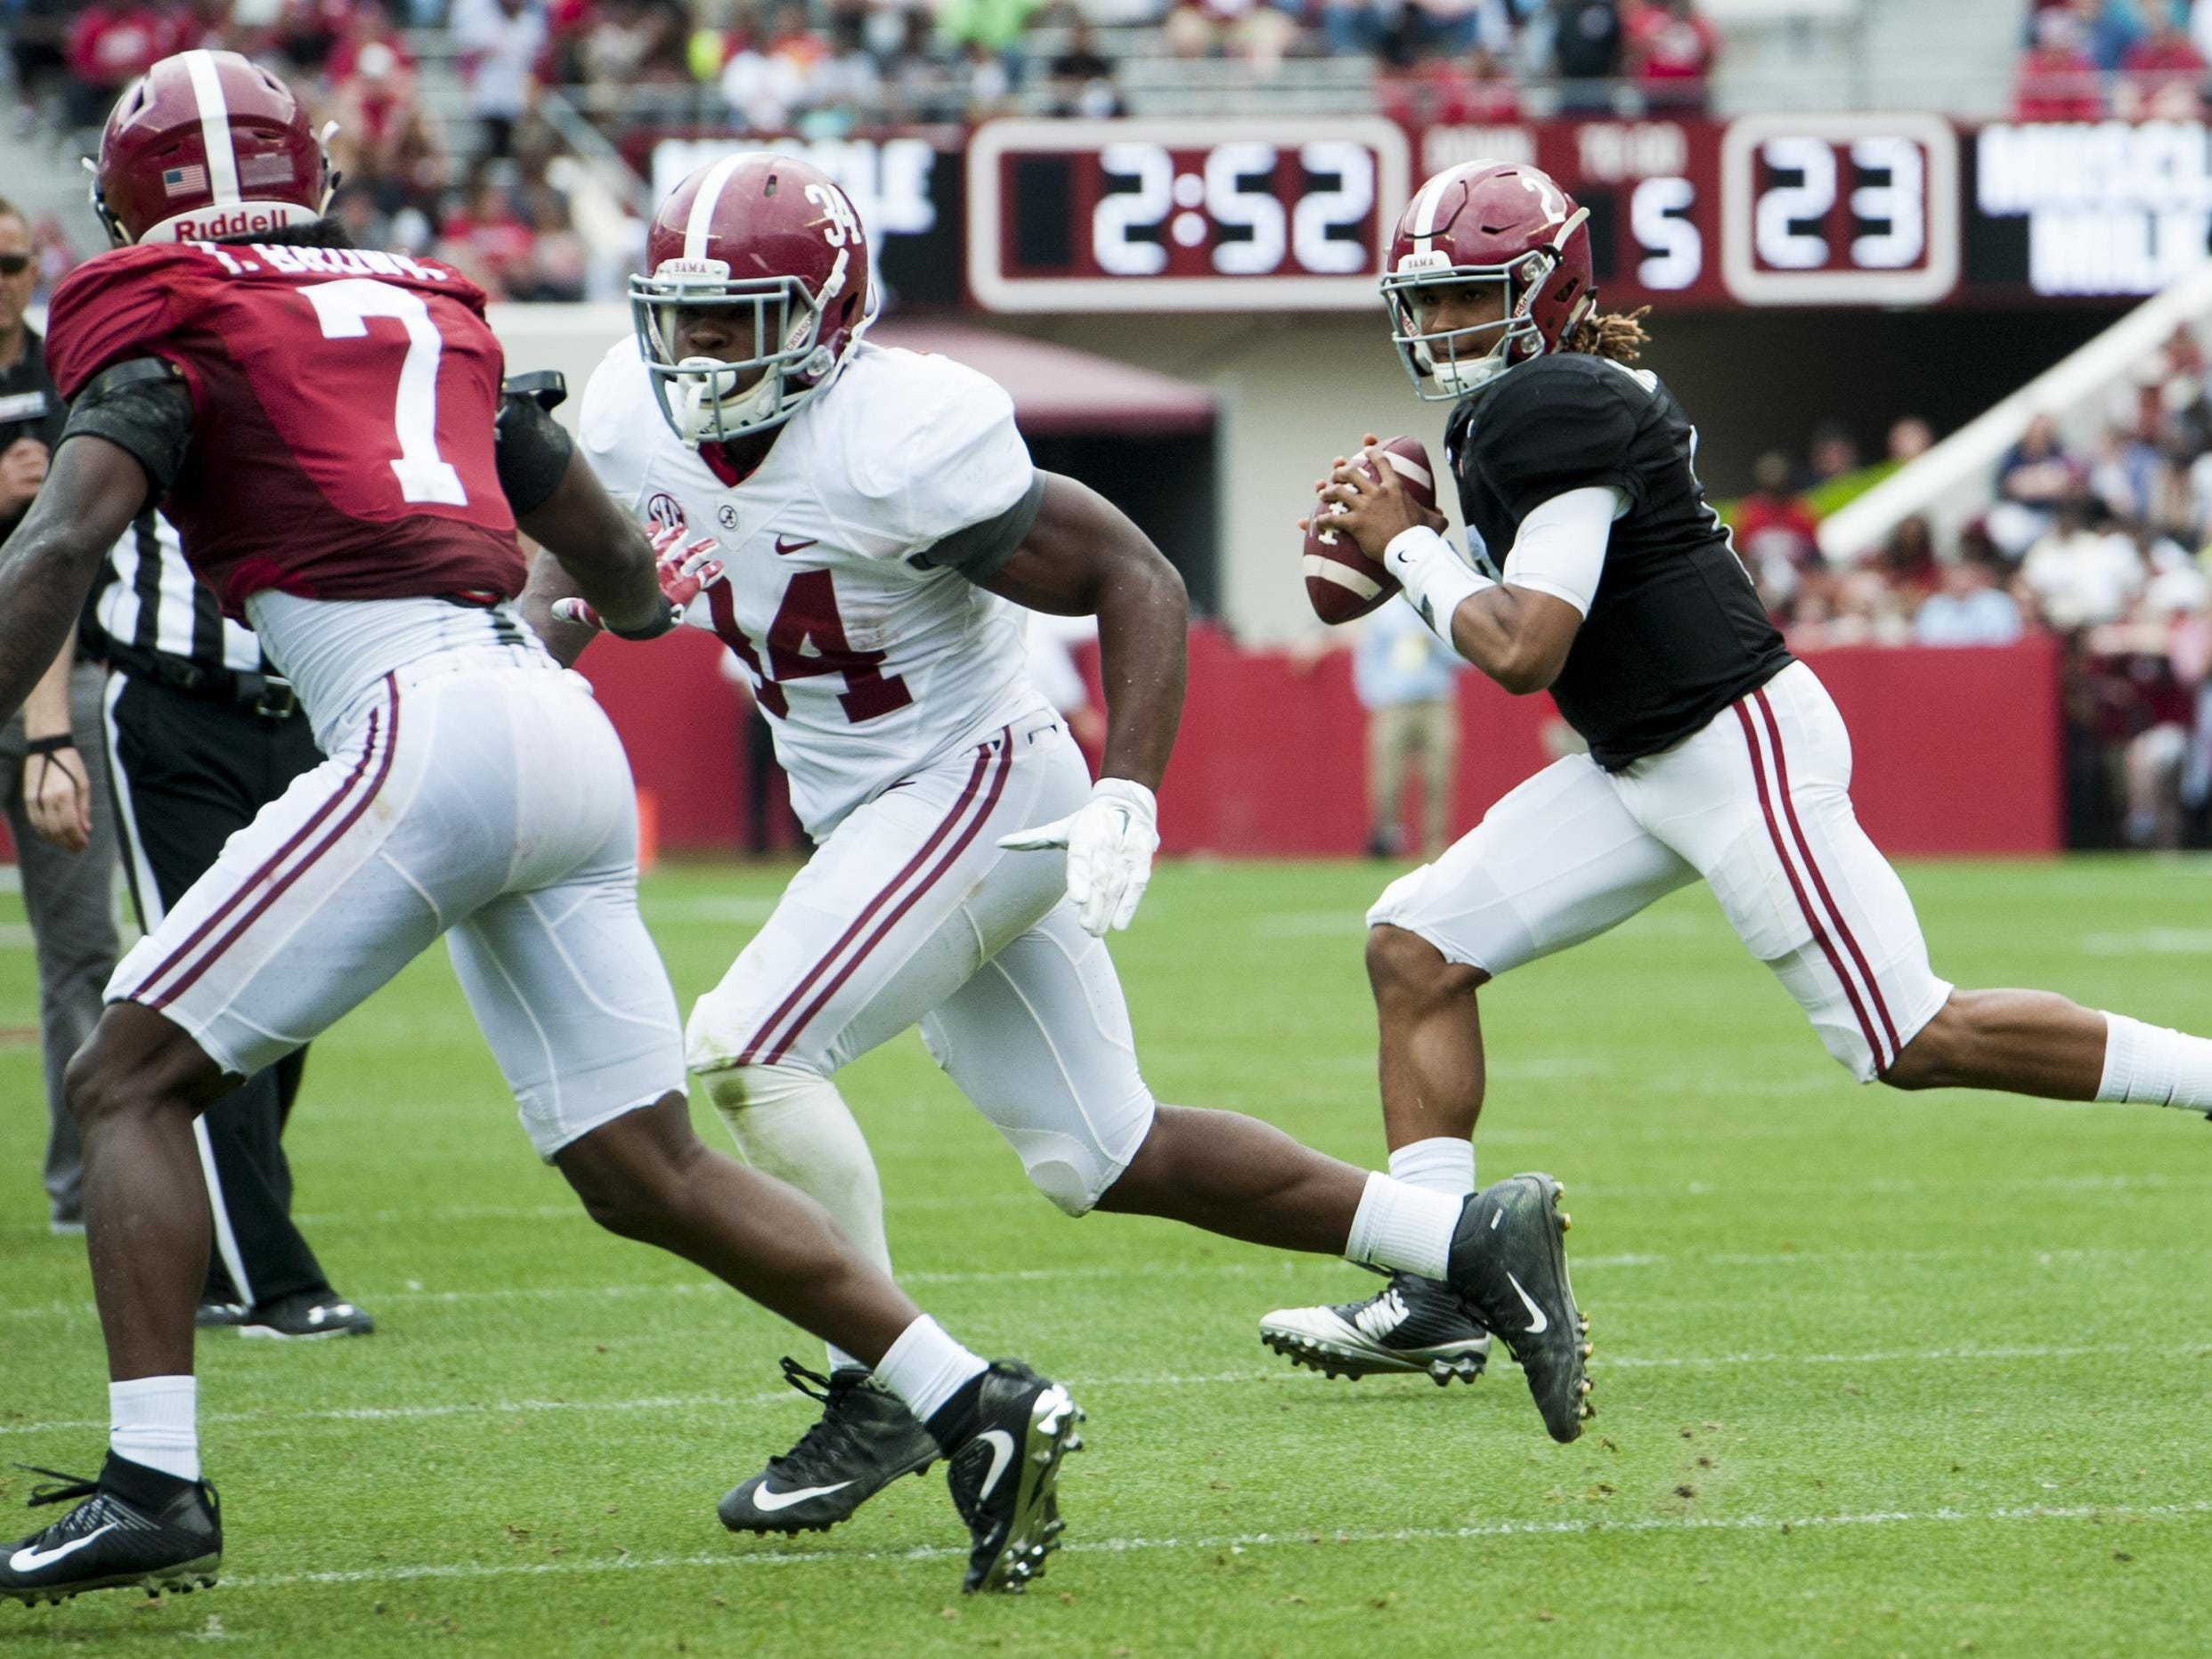 Alabama quarterback Jalen Hurts rolls out behind the blocking of running back Damien Harris (34) during the Alabama A-Day spring football game at Bryant-Denny Stadium on April 16, 2016.